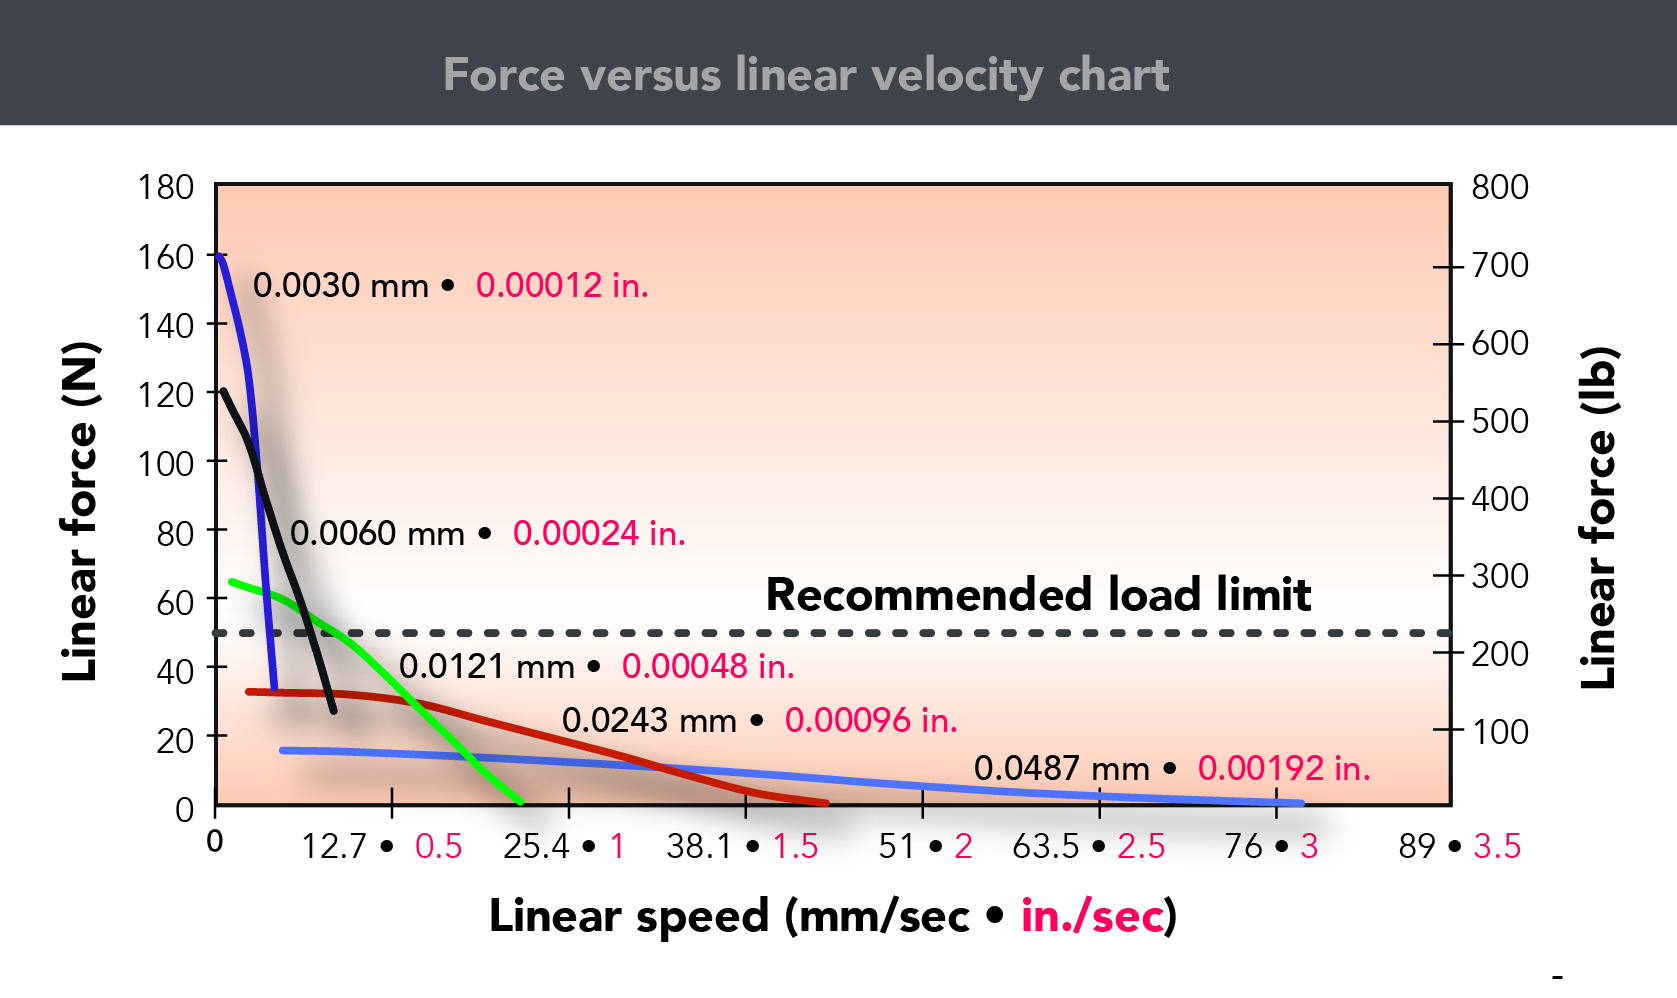 What S The Use Of A Force Versus Linear Velocity Chart